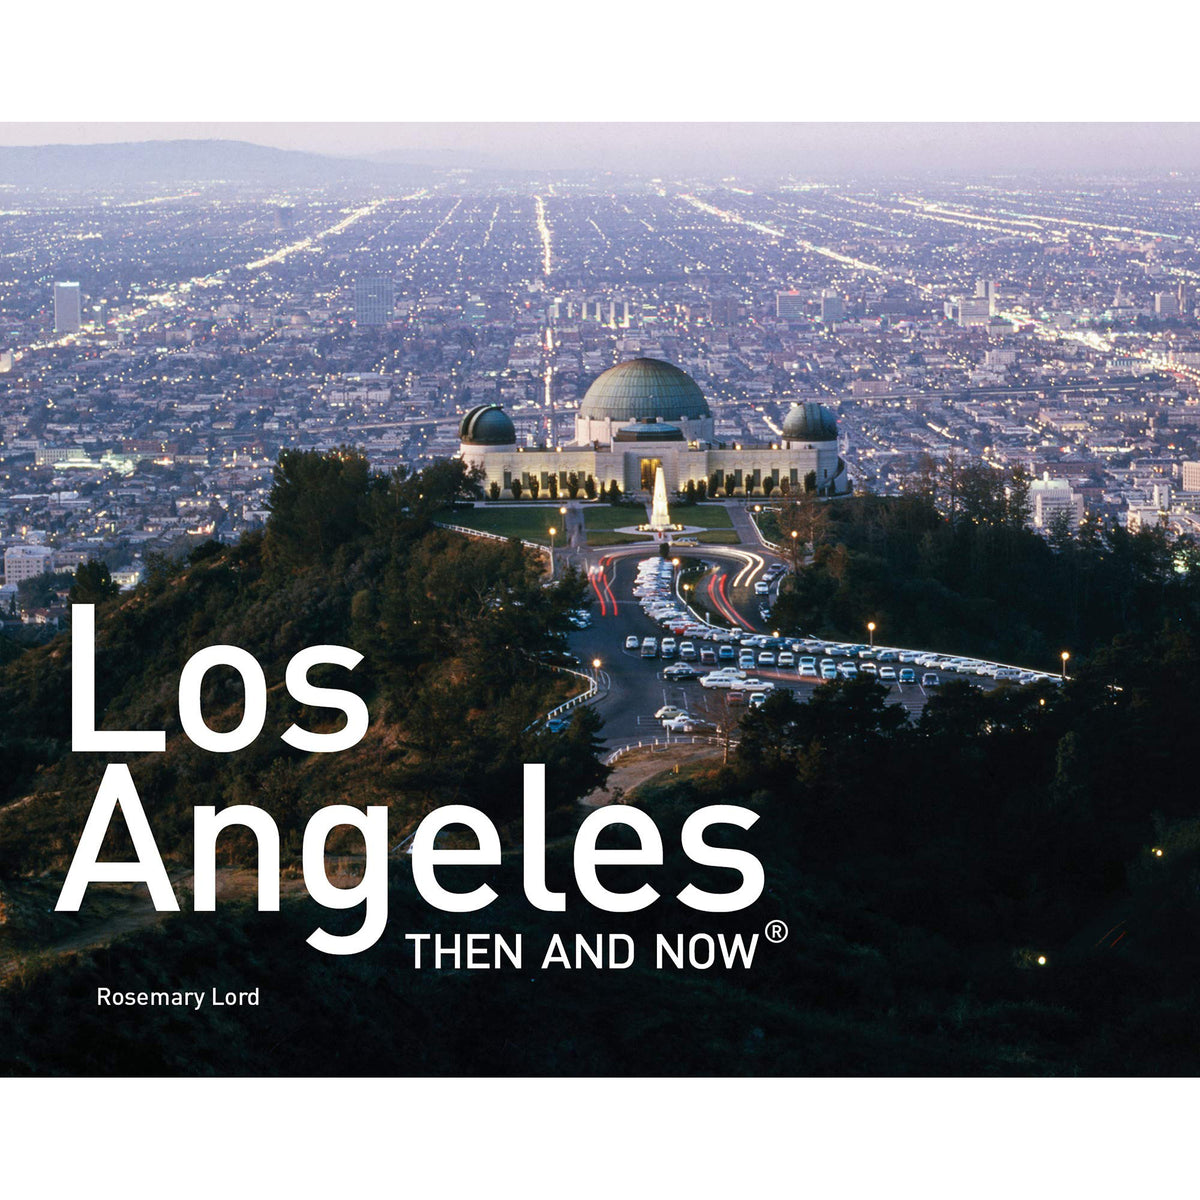 Los Angeles: Then and Now - New Mini Edition